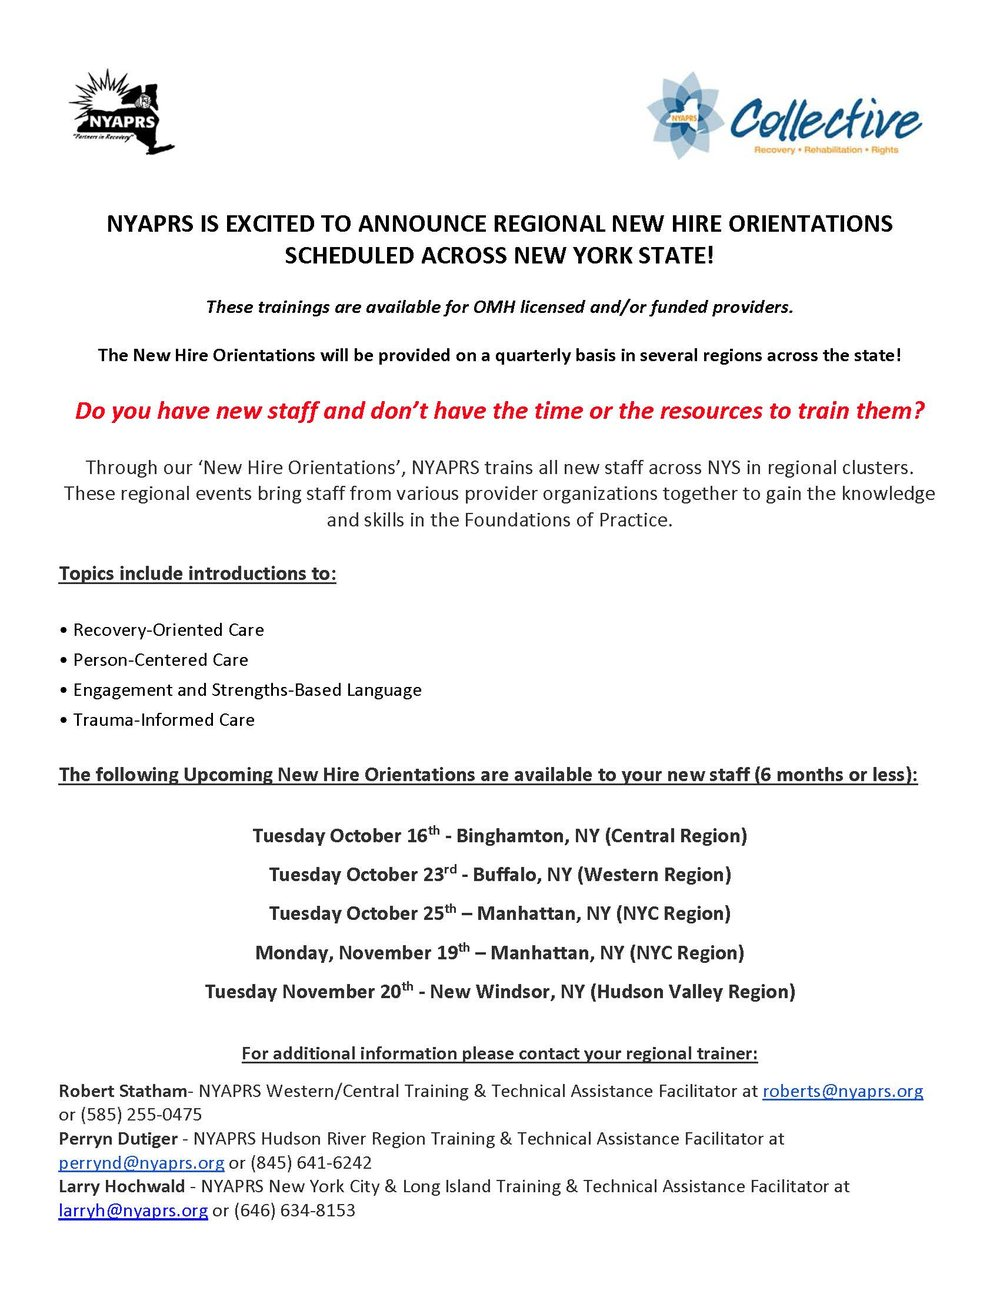 New Hire Orientation Email Blast-Flyer.jpg